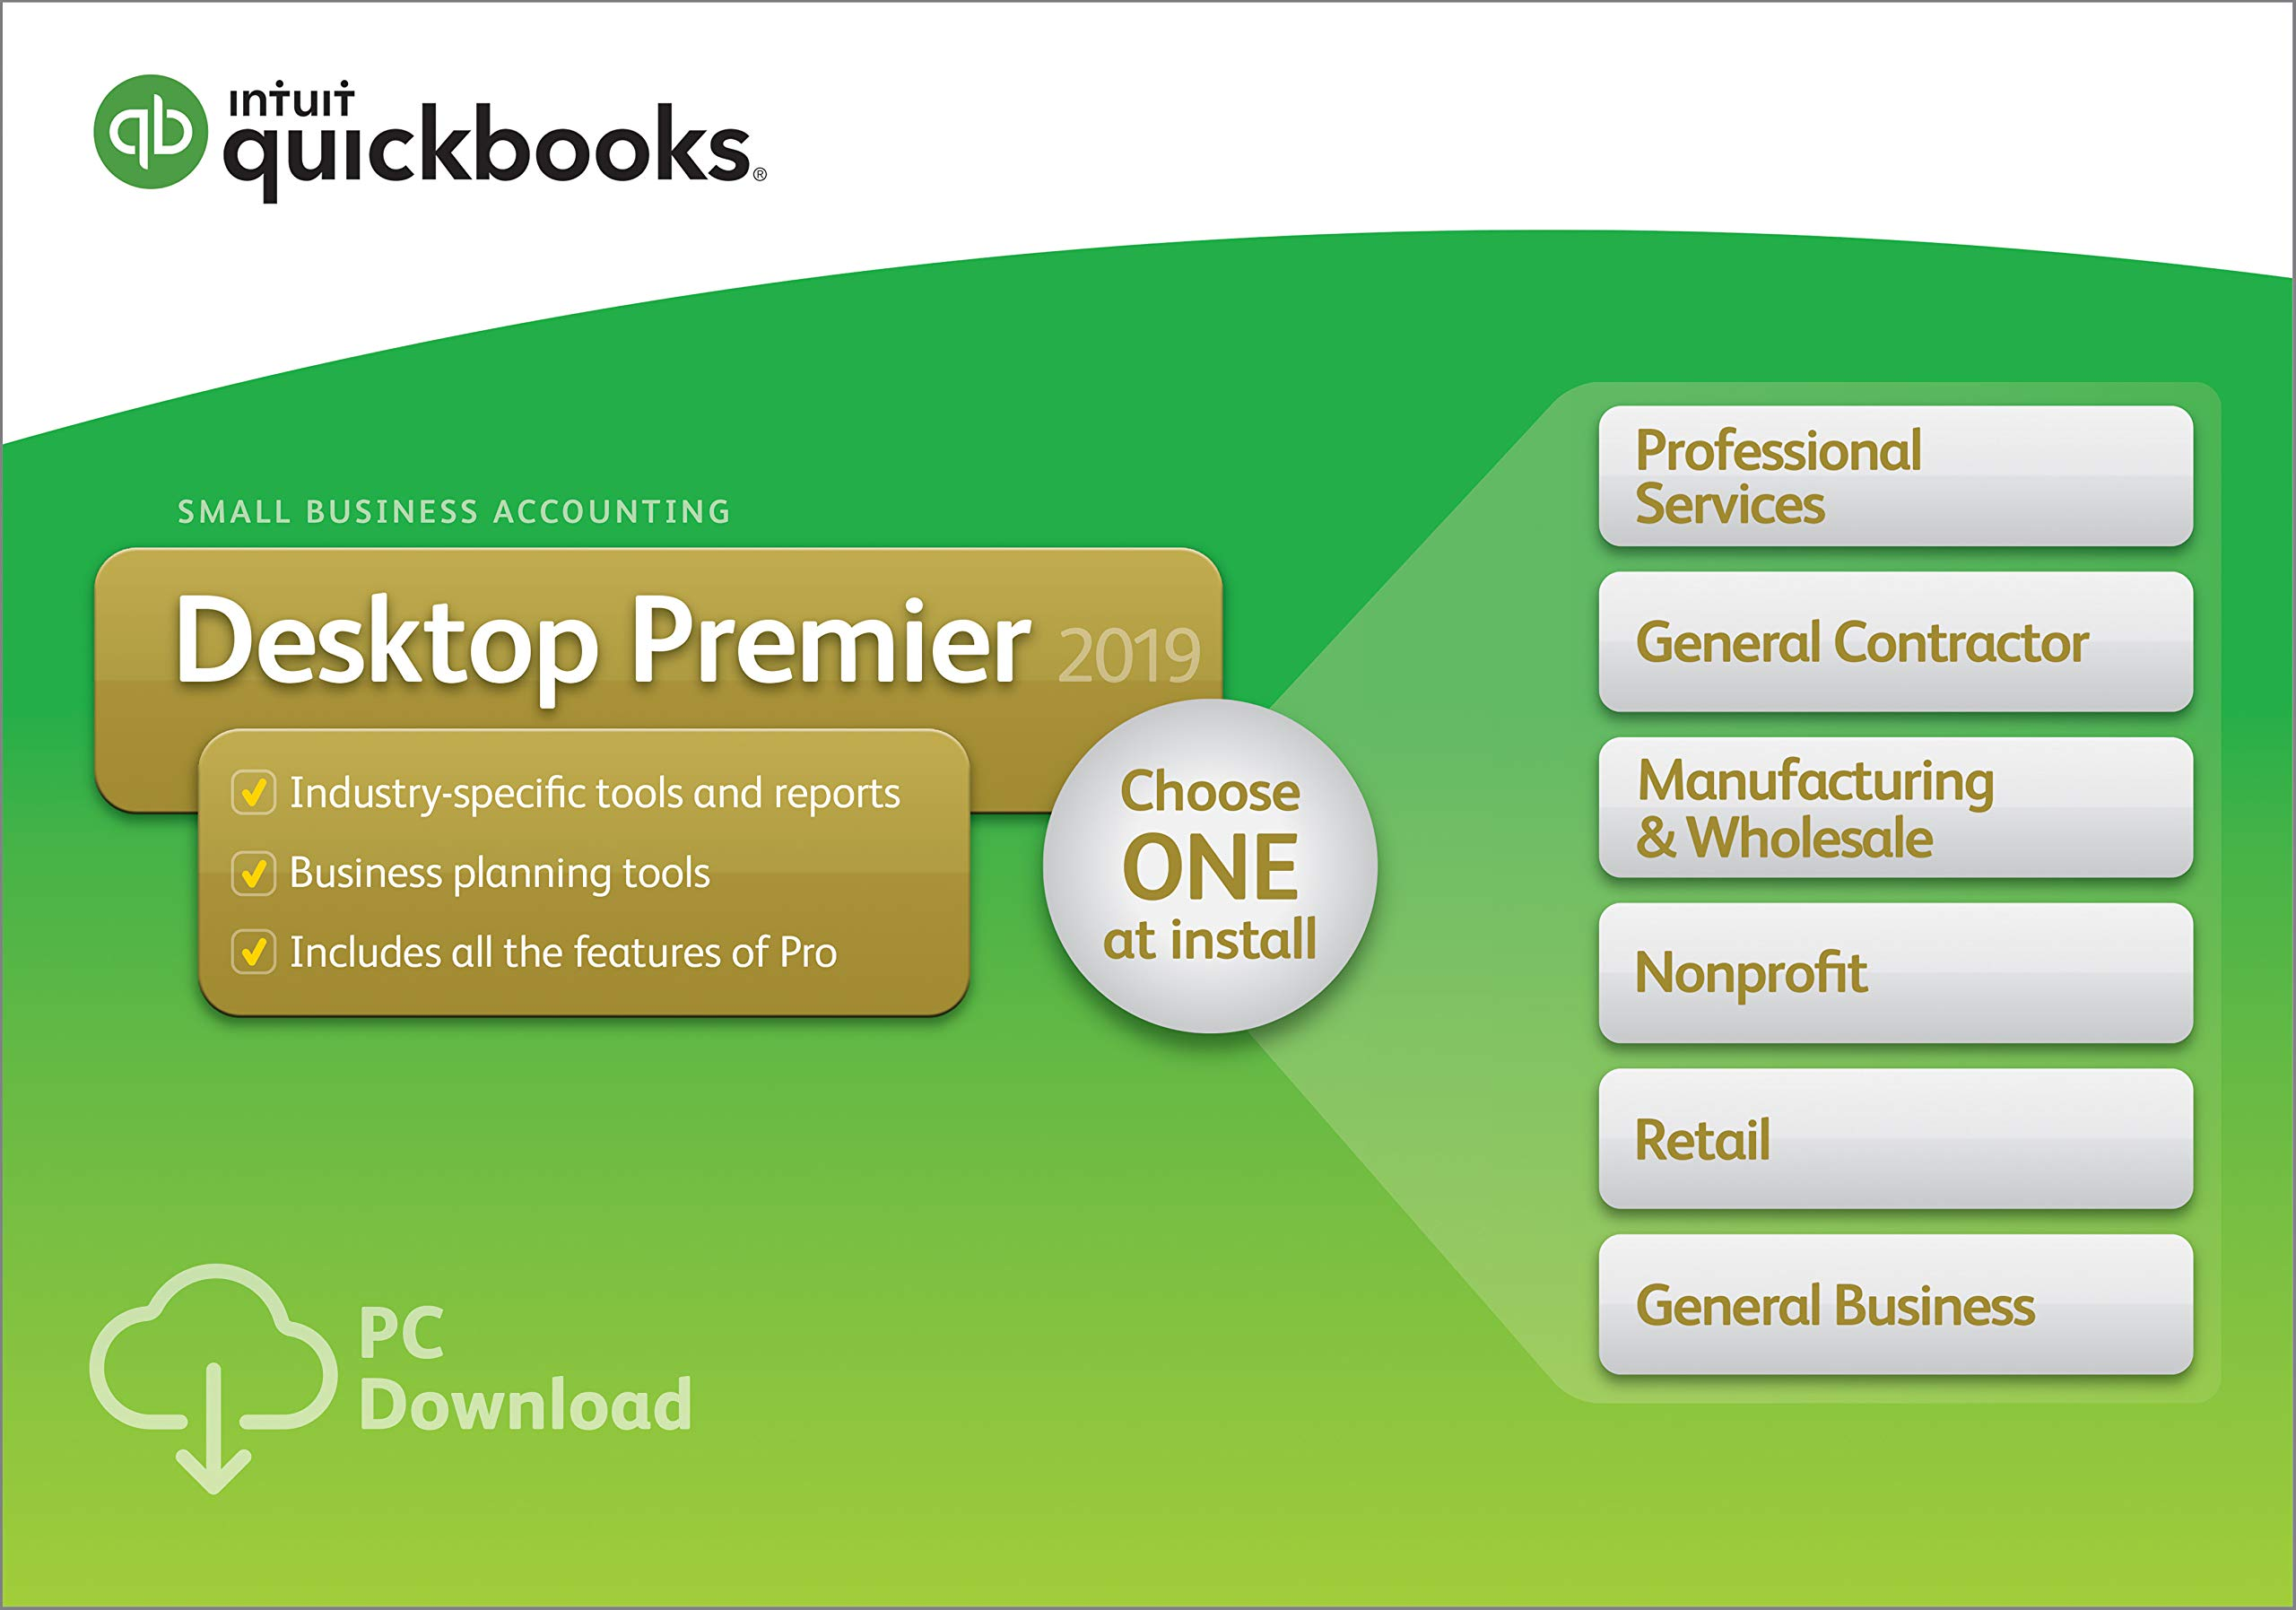 QuickBooks Desktop Premier 2019 [PC Download] by Intuit